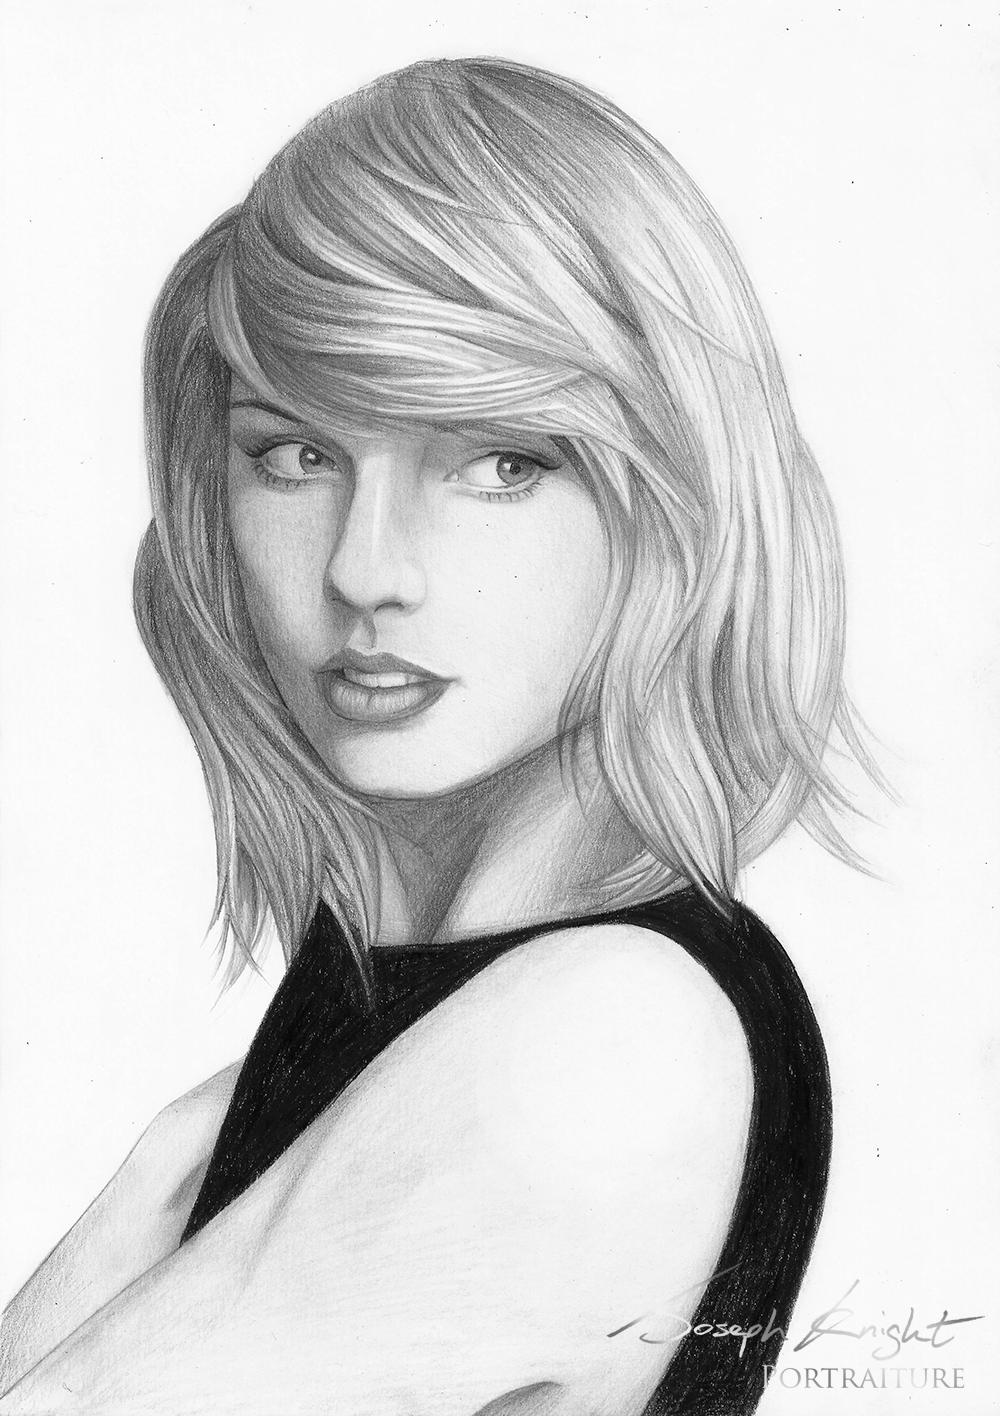 Drawn portrait taylor swift Portrait Taylor materia materia white